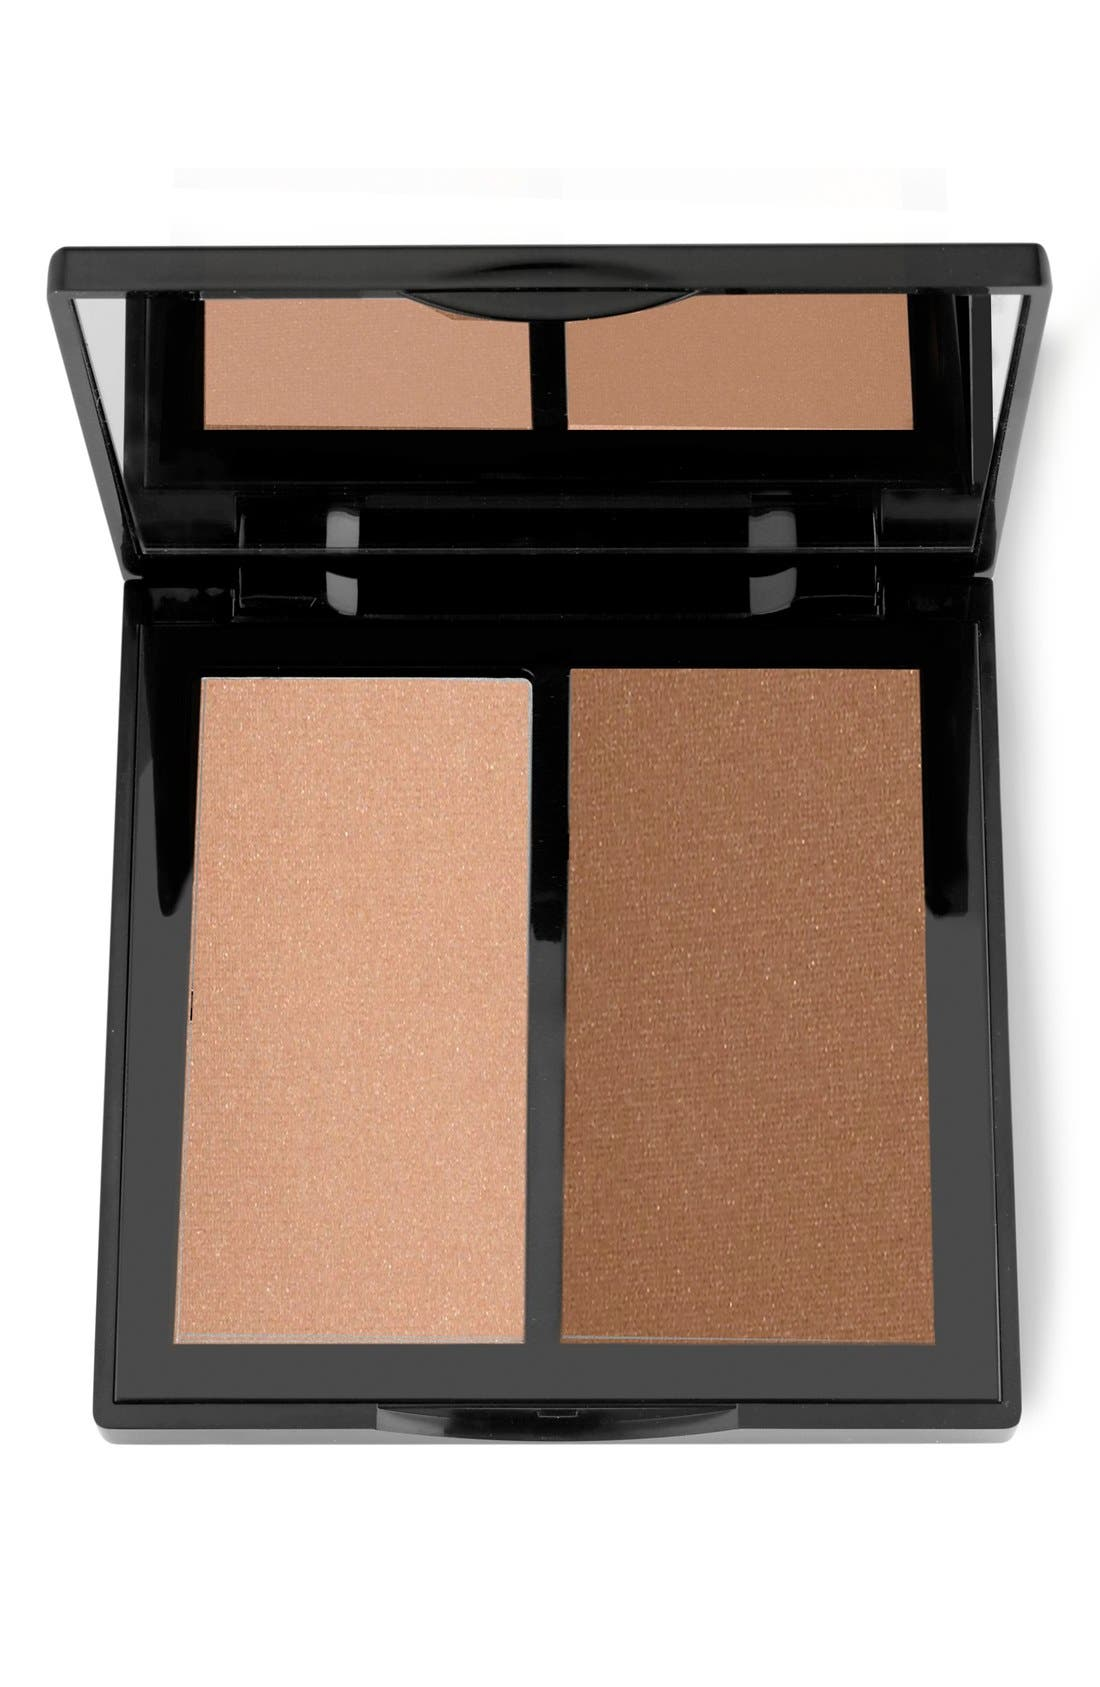 Trish McEvoy Light & Lift Face Color Duo